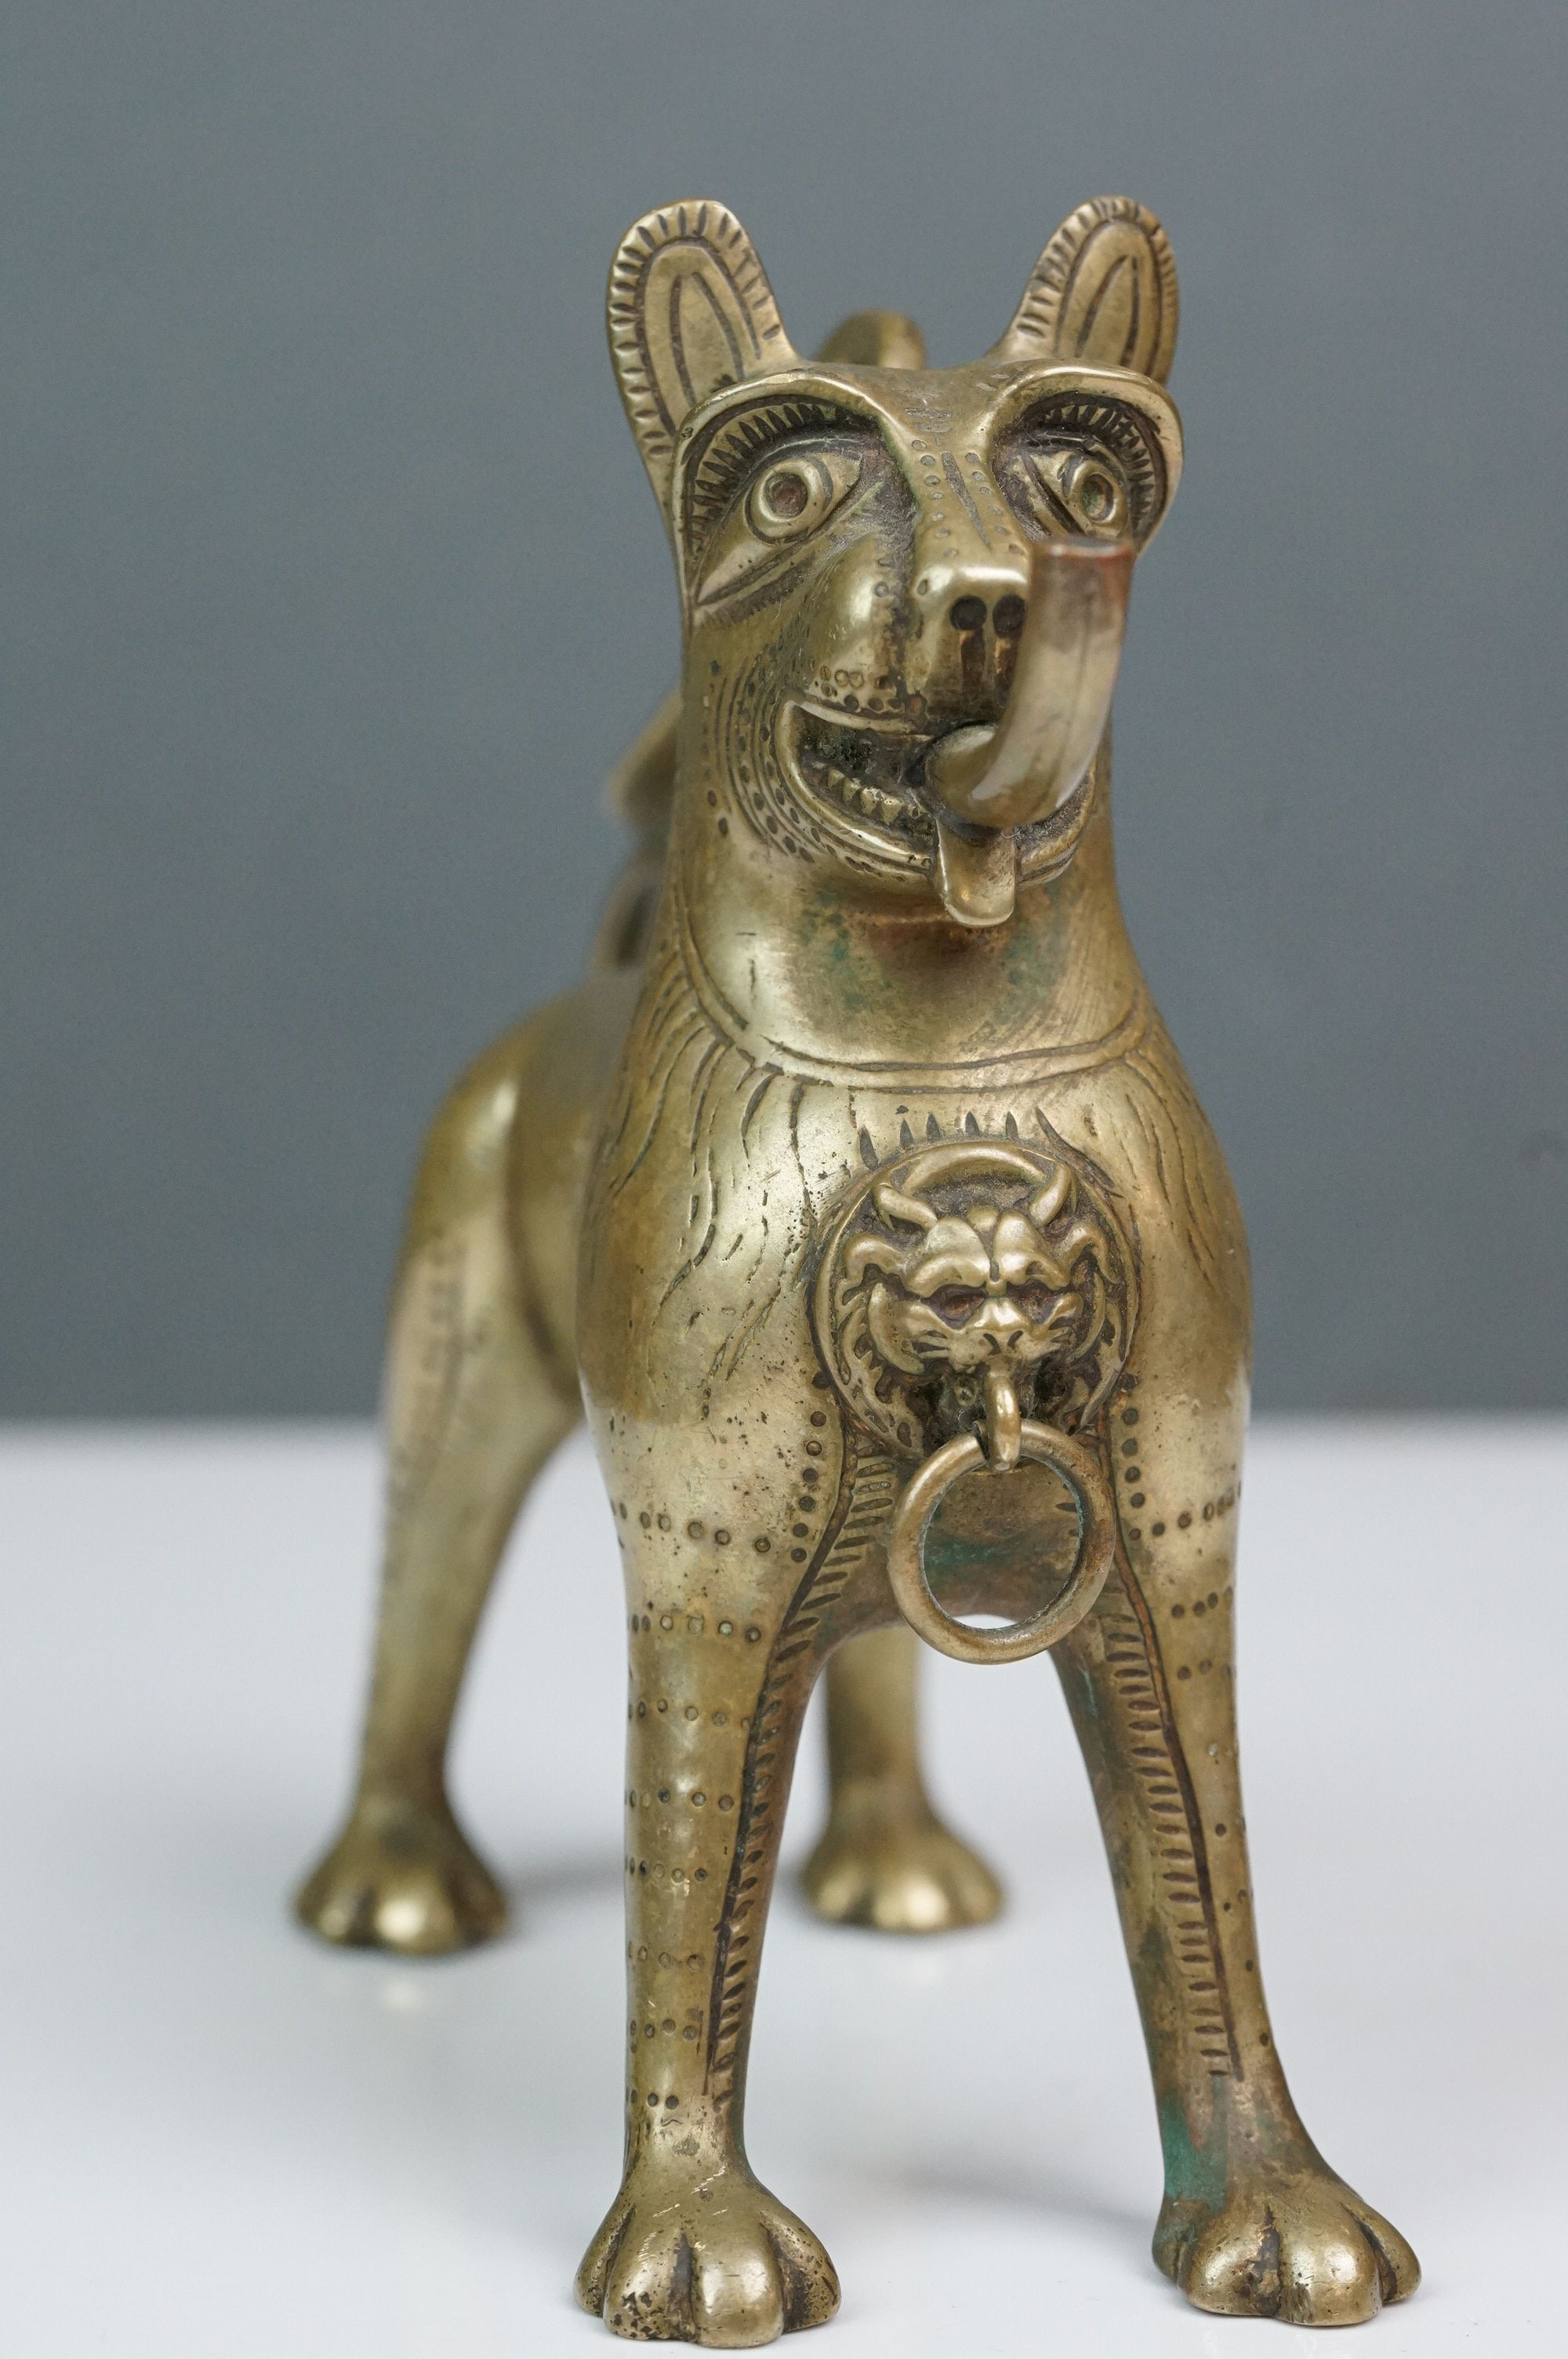 Antique brass table top cigar lighter in the form of a stylized dog - Image 4 of 9